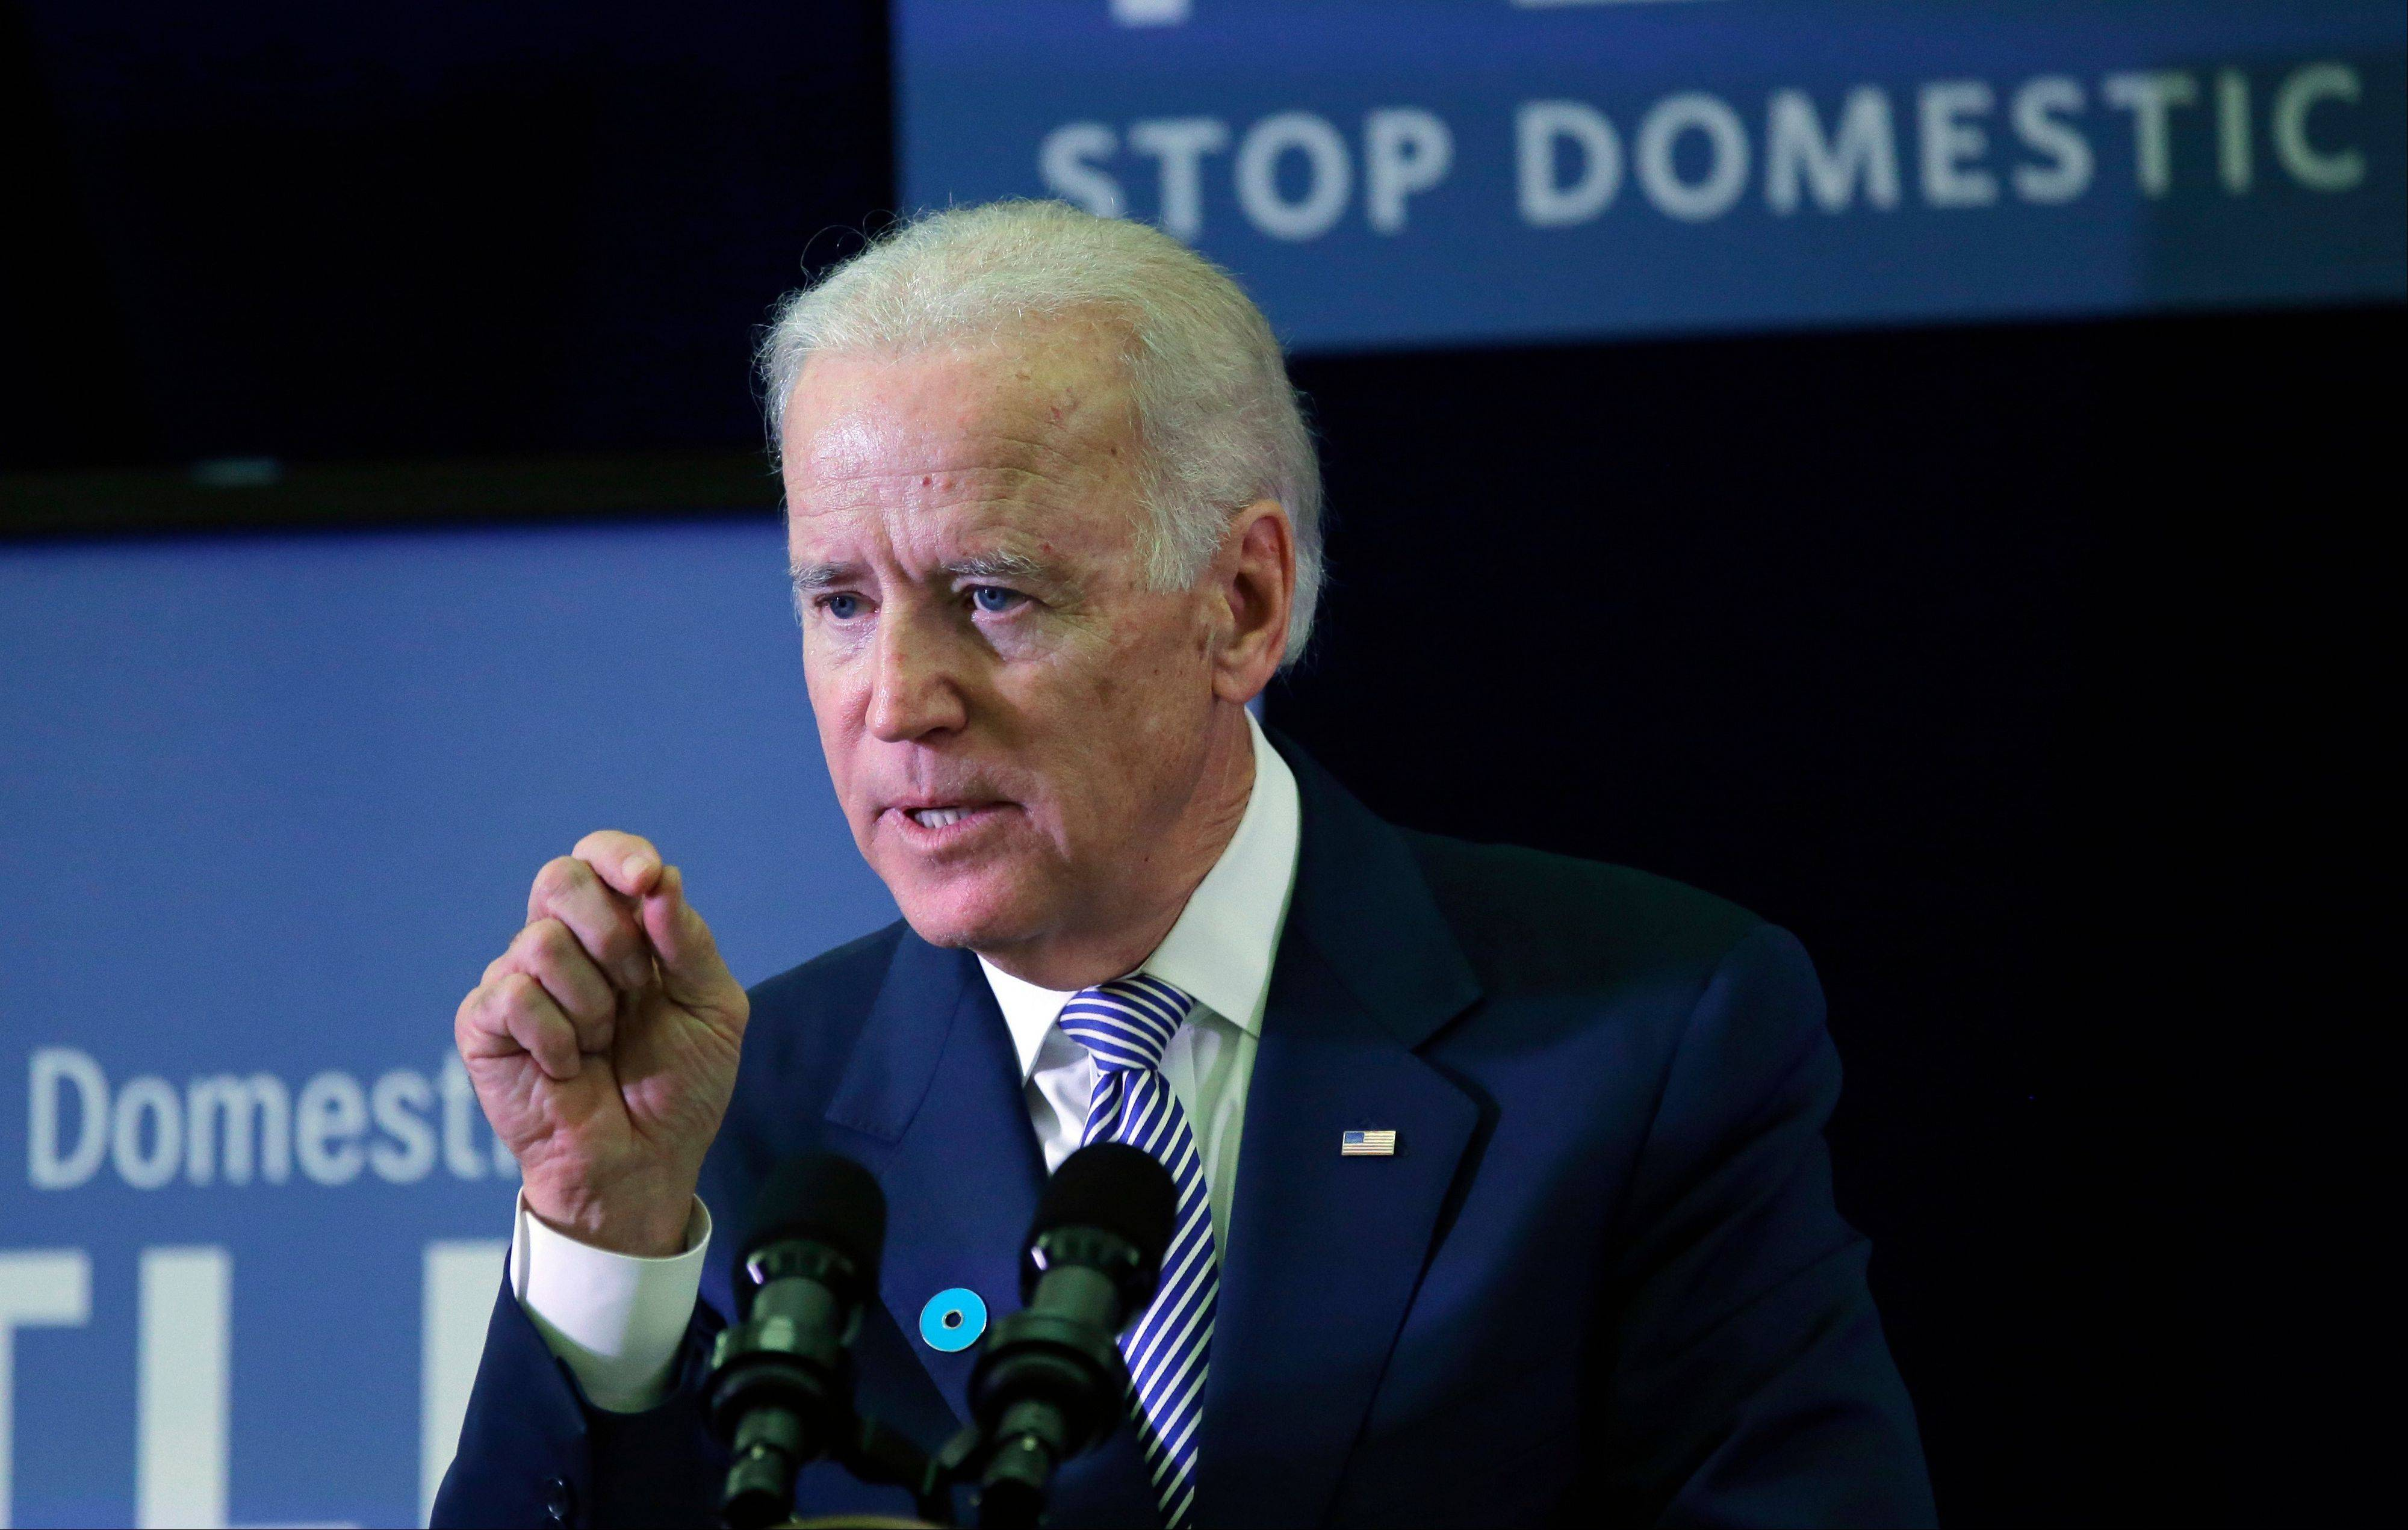 A new book asserts the idea of replacing Vice President Joe Biden with Hillary Rodham Clinton was floated in President Barack Obama�s 2012 re-election campaign, but the former White House chief of staff denies it.